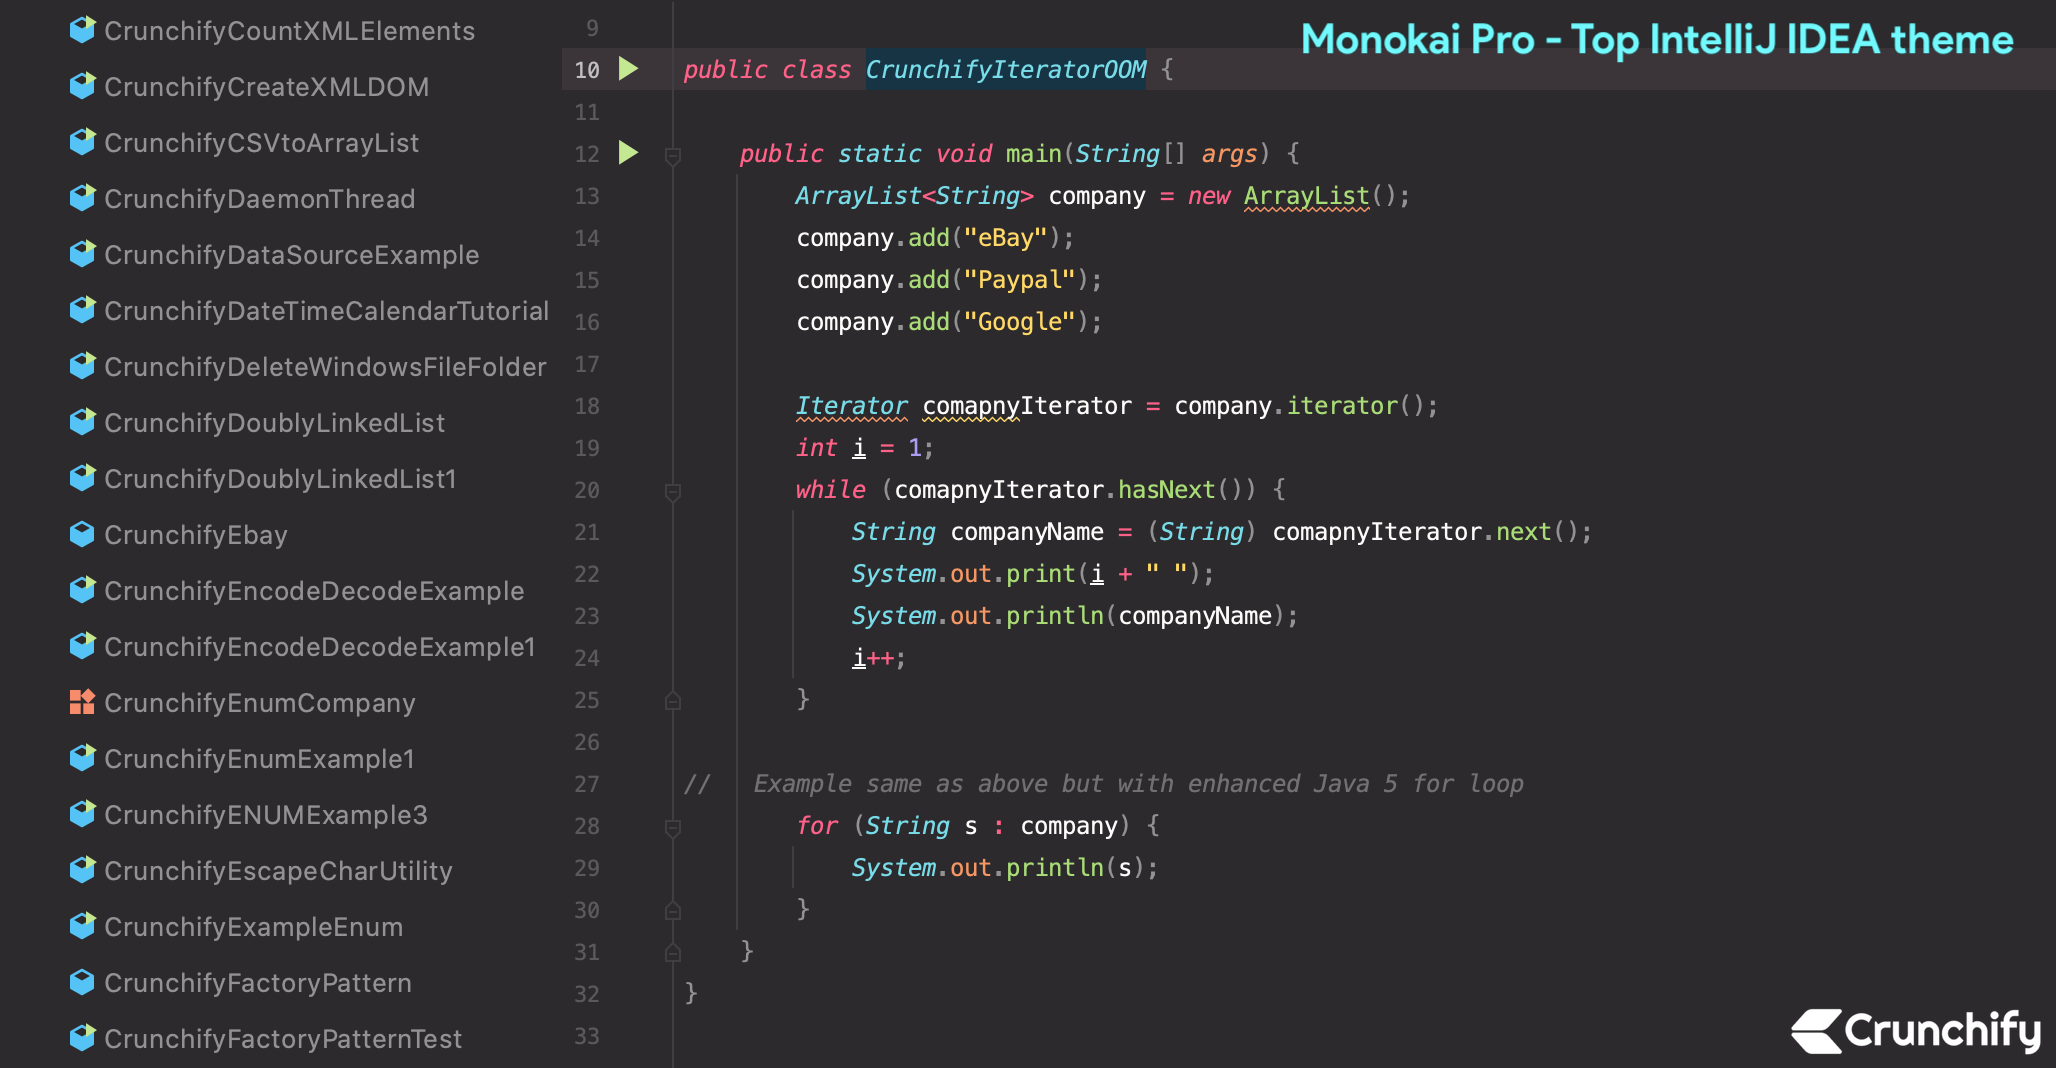 Top IntelliJ IDEA theme - monokai pro theme